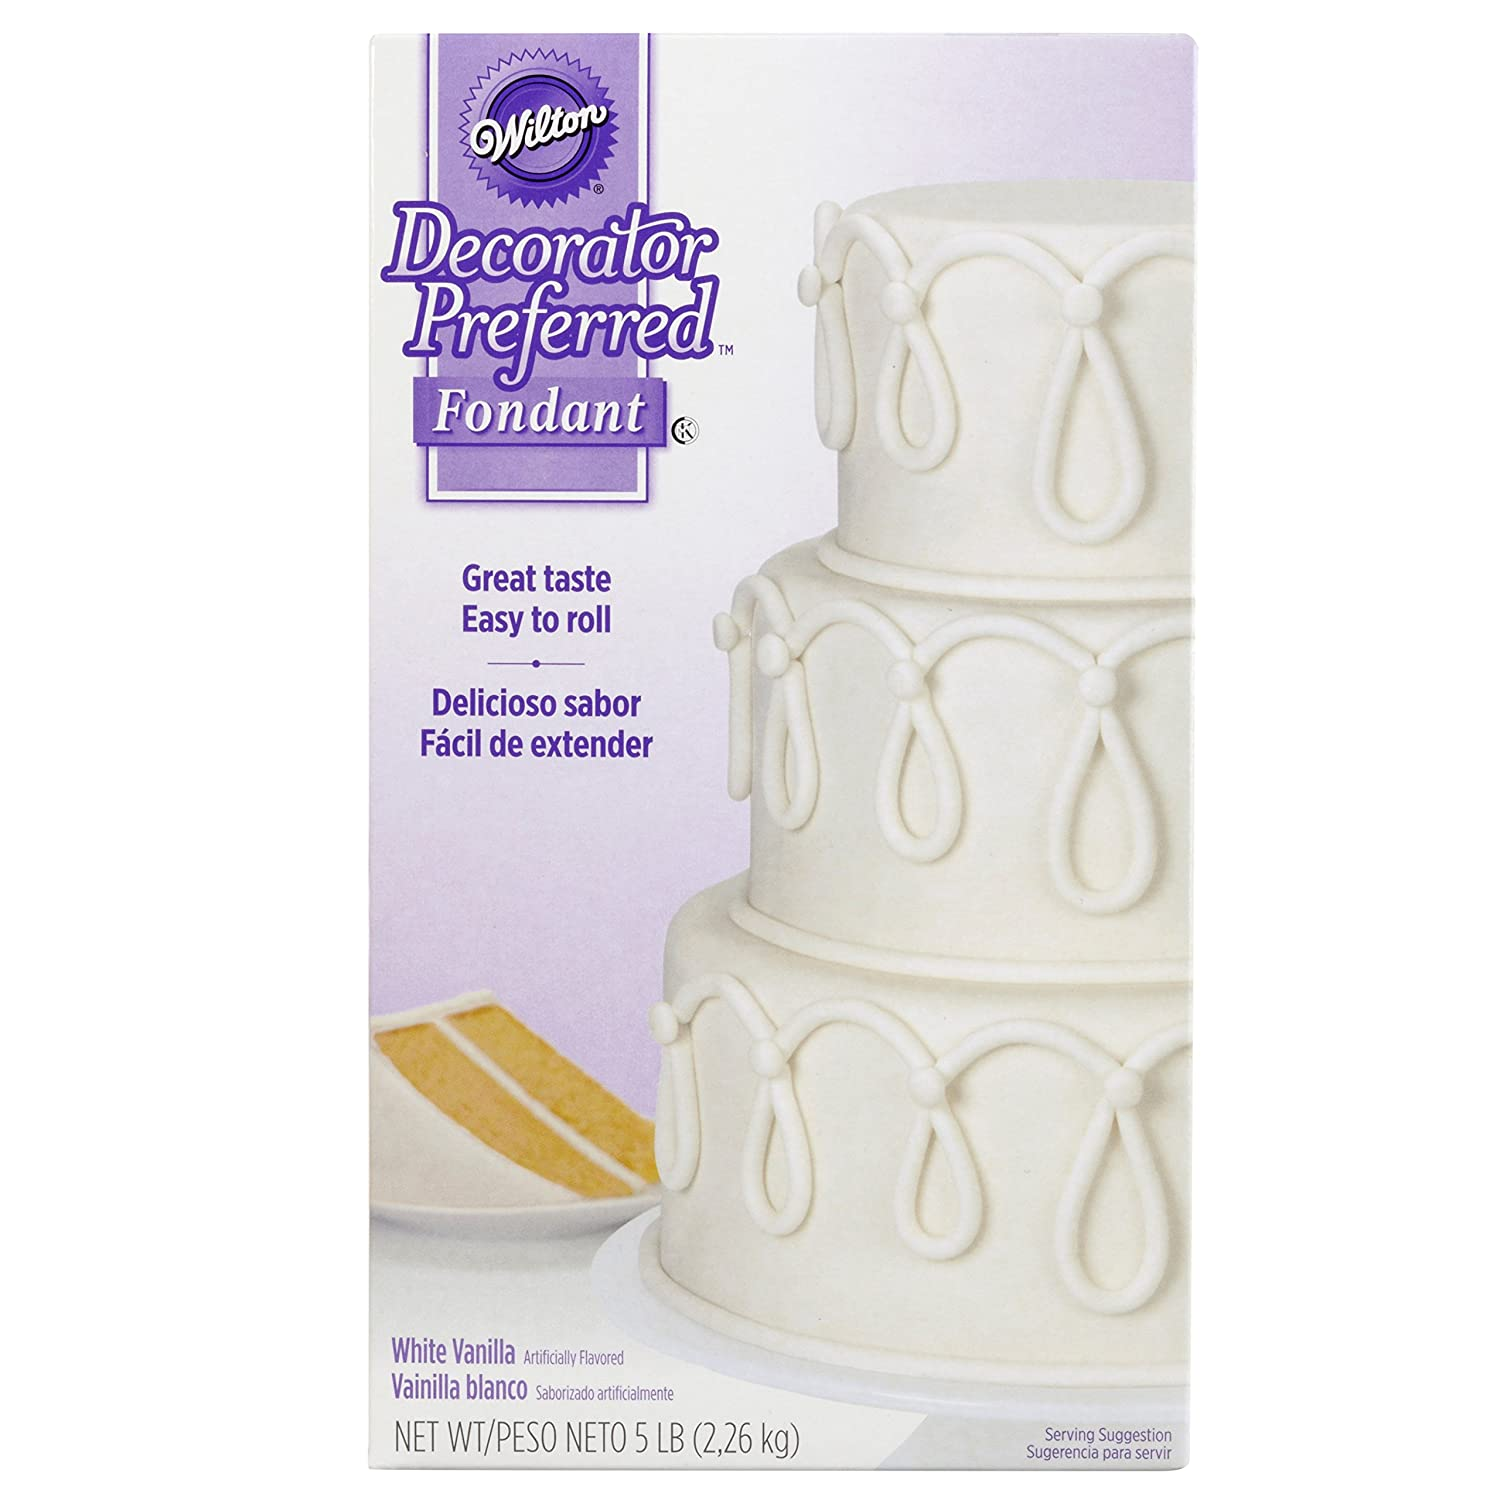 Wilton Decorator Preferred White Fondant, 5 lb. 710-2300